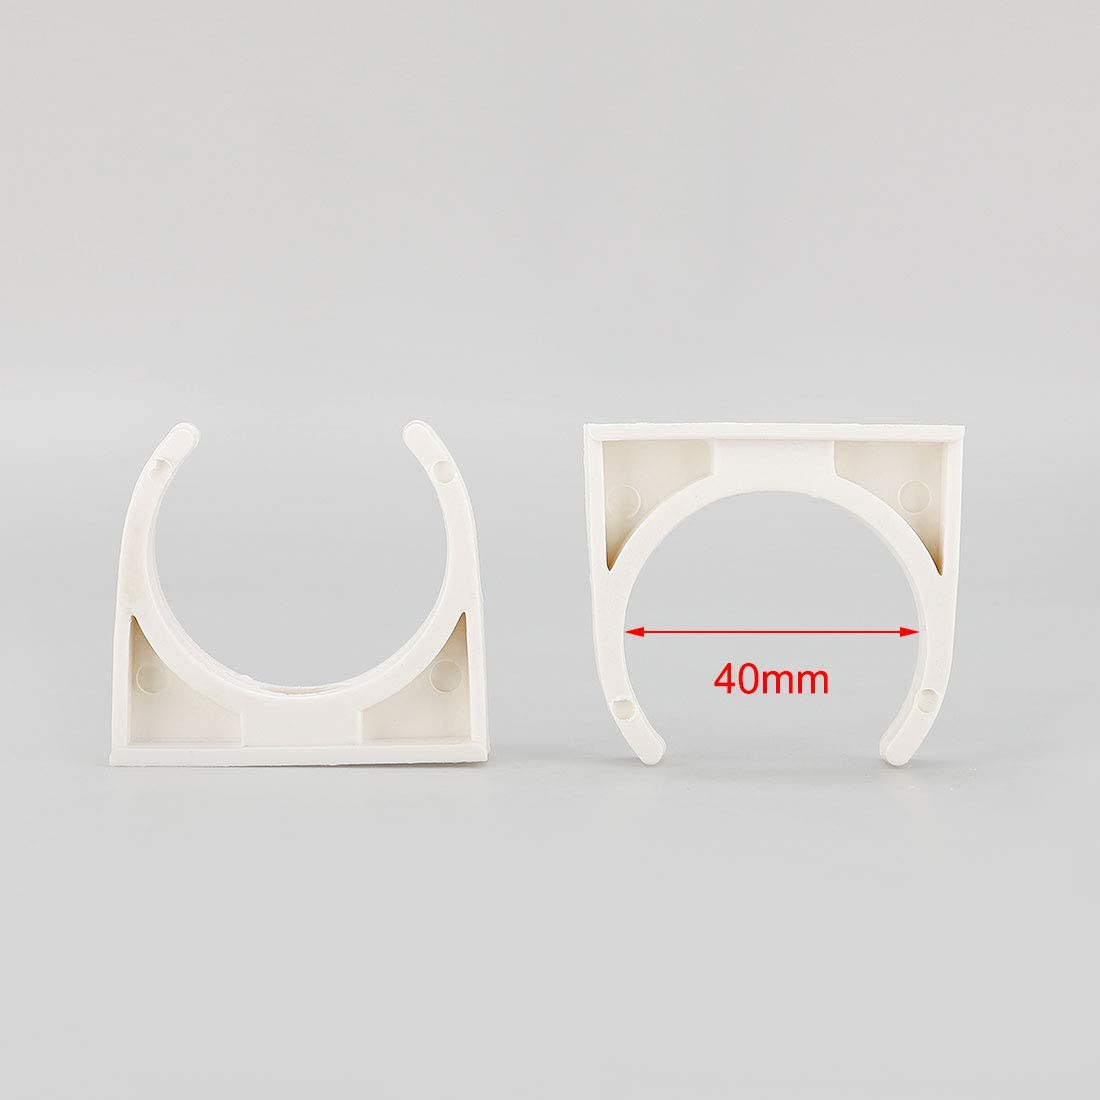 uxcell PVC Home U Shaped Pipe Clamp Water Supply Pipe Holder Stand Clamps Snap-in Clamp Bracket 40mm Dia 10pcs White